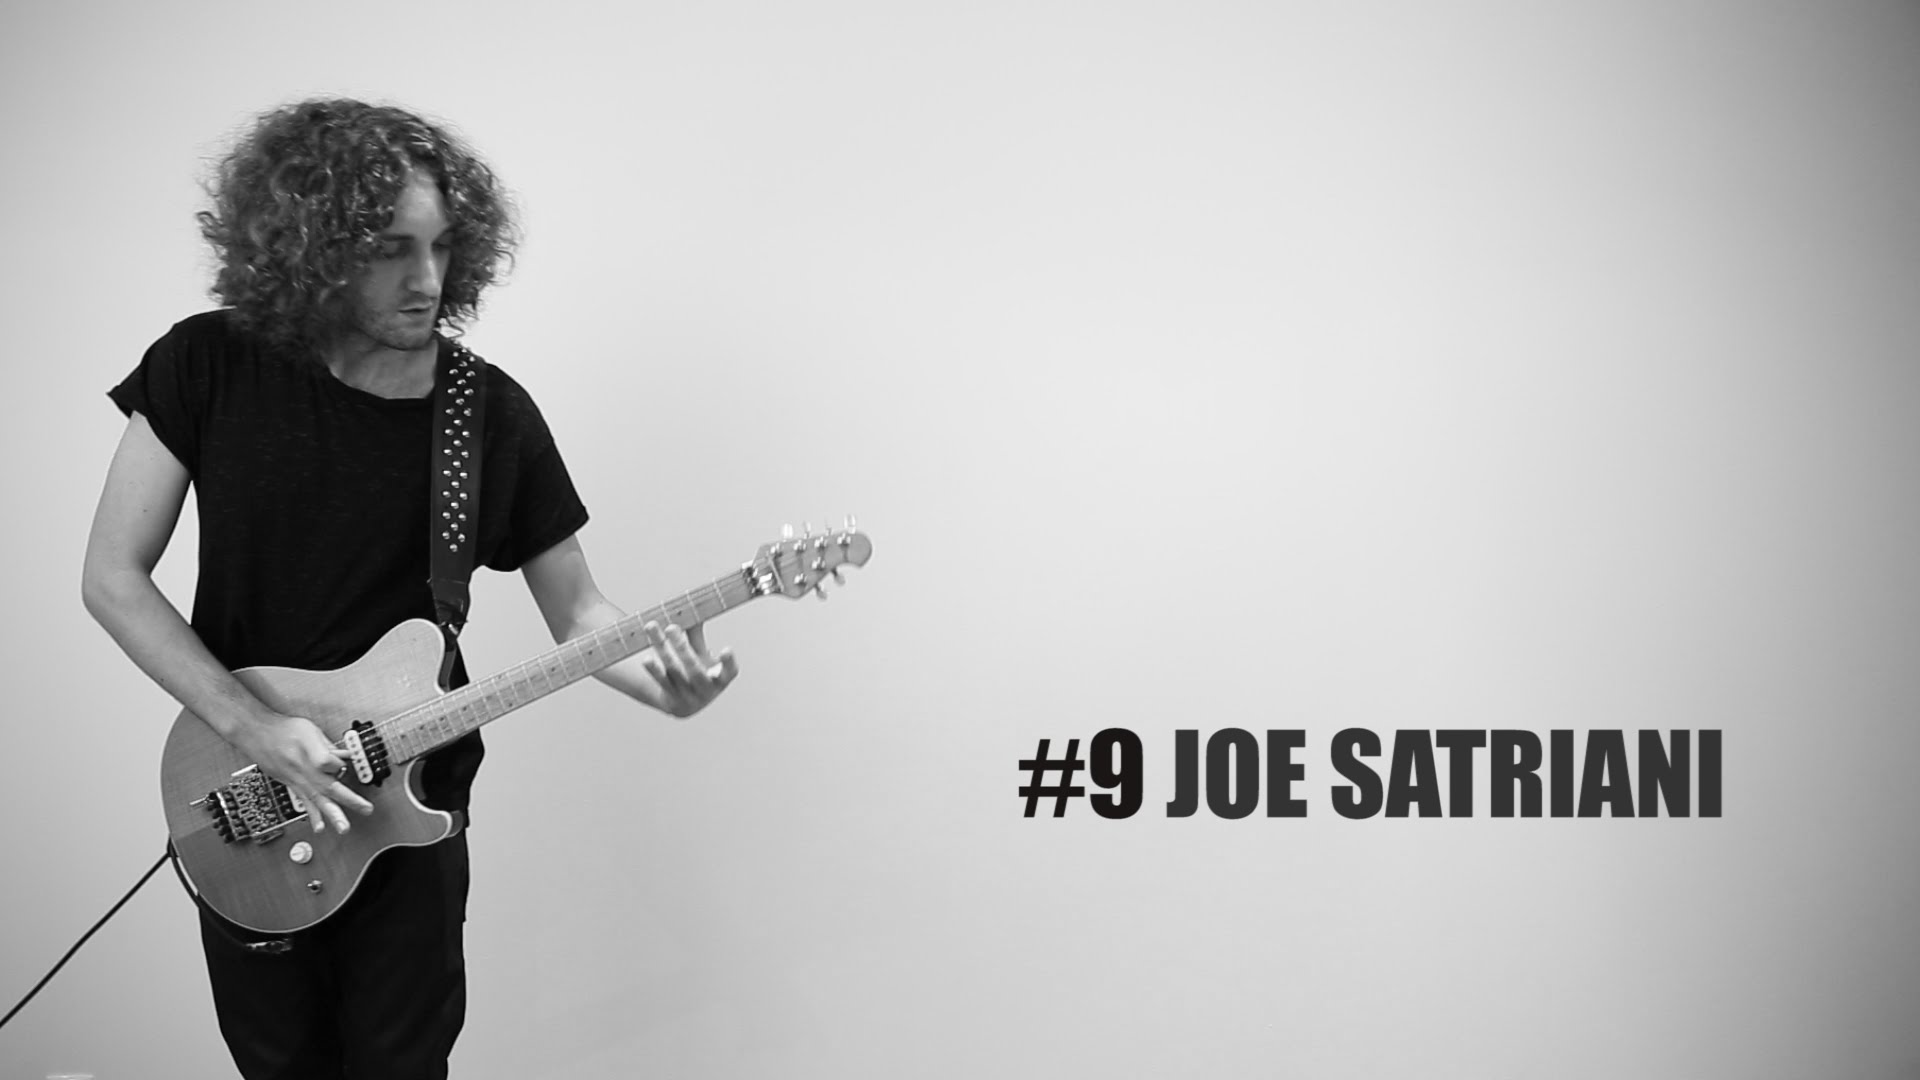 A Guitar Cover of the Daft Punk Song 'Get Lucky' in the Styles of 10 Famous Guitarists